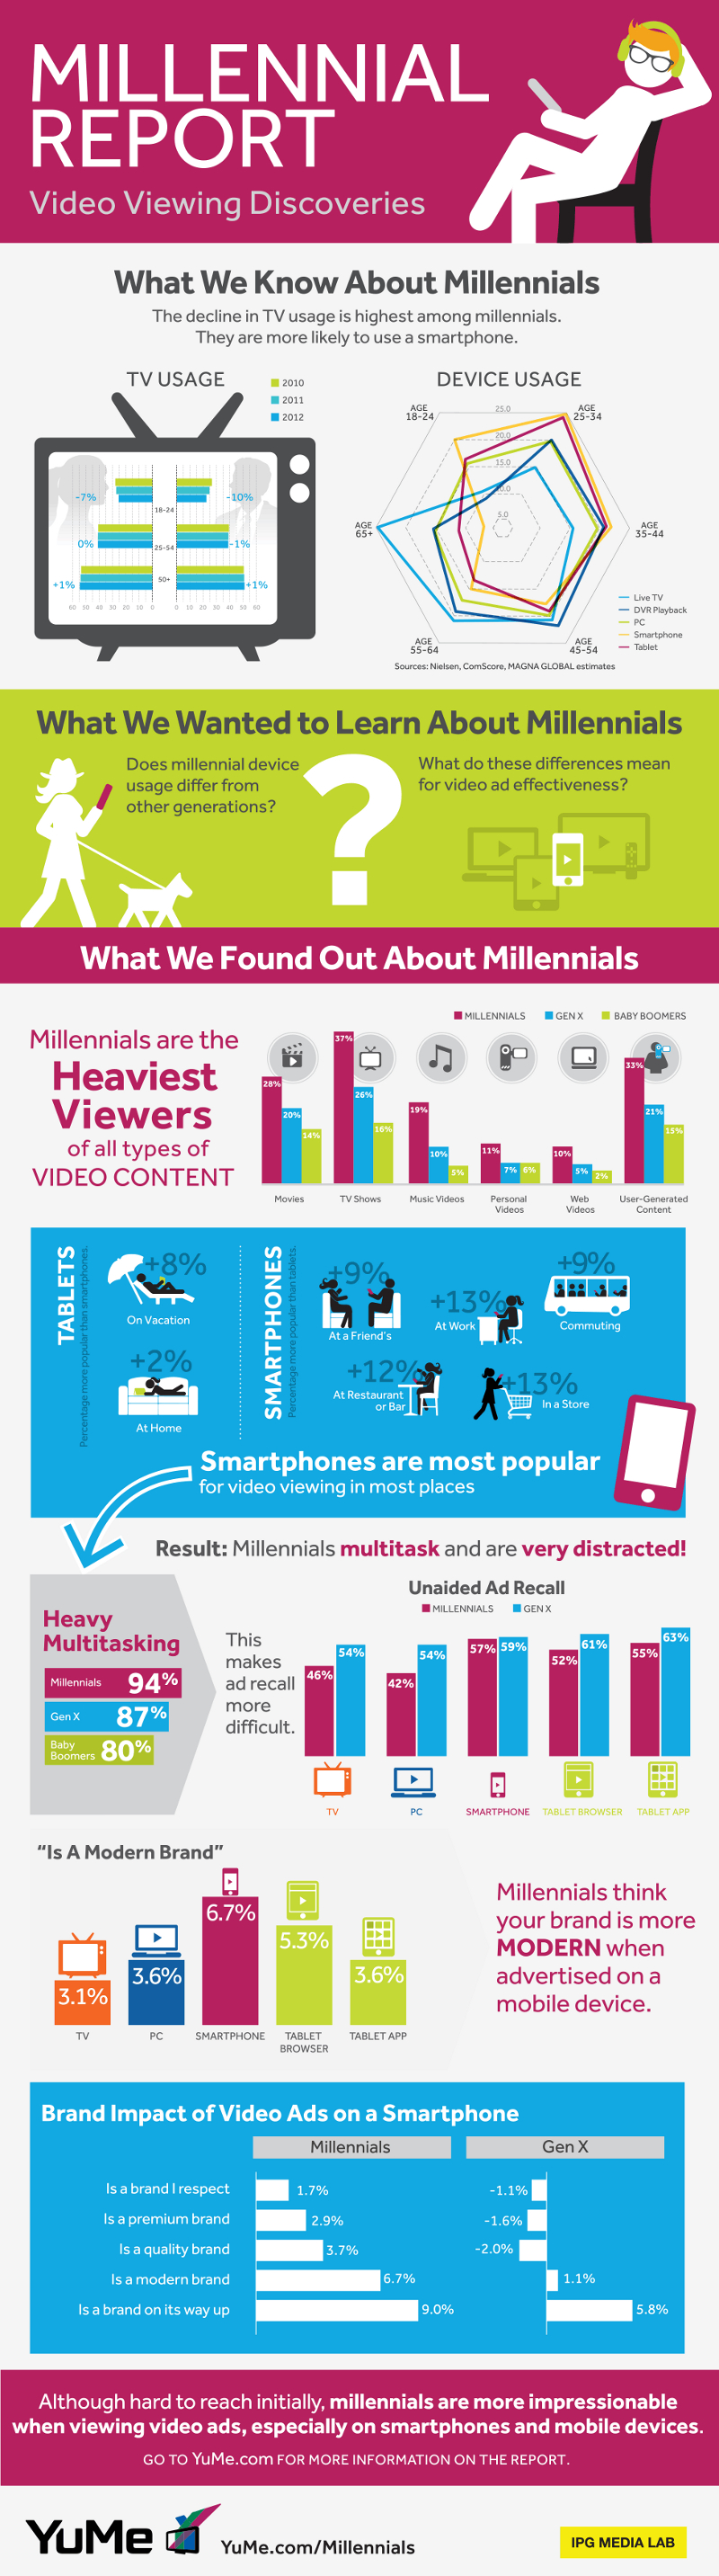 Habits of Millennials